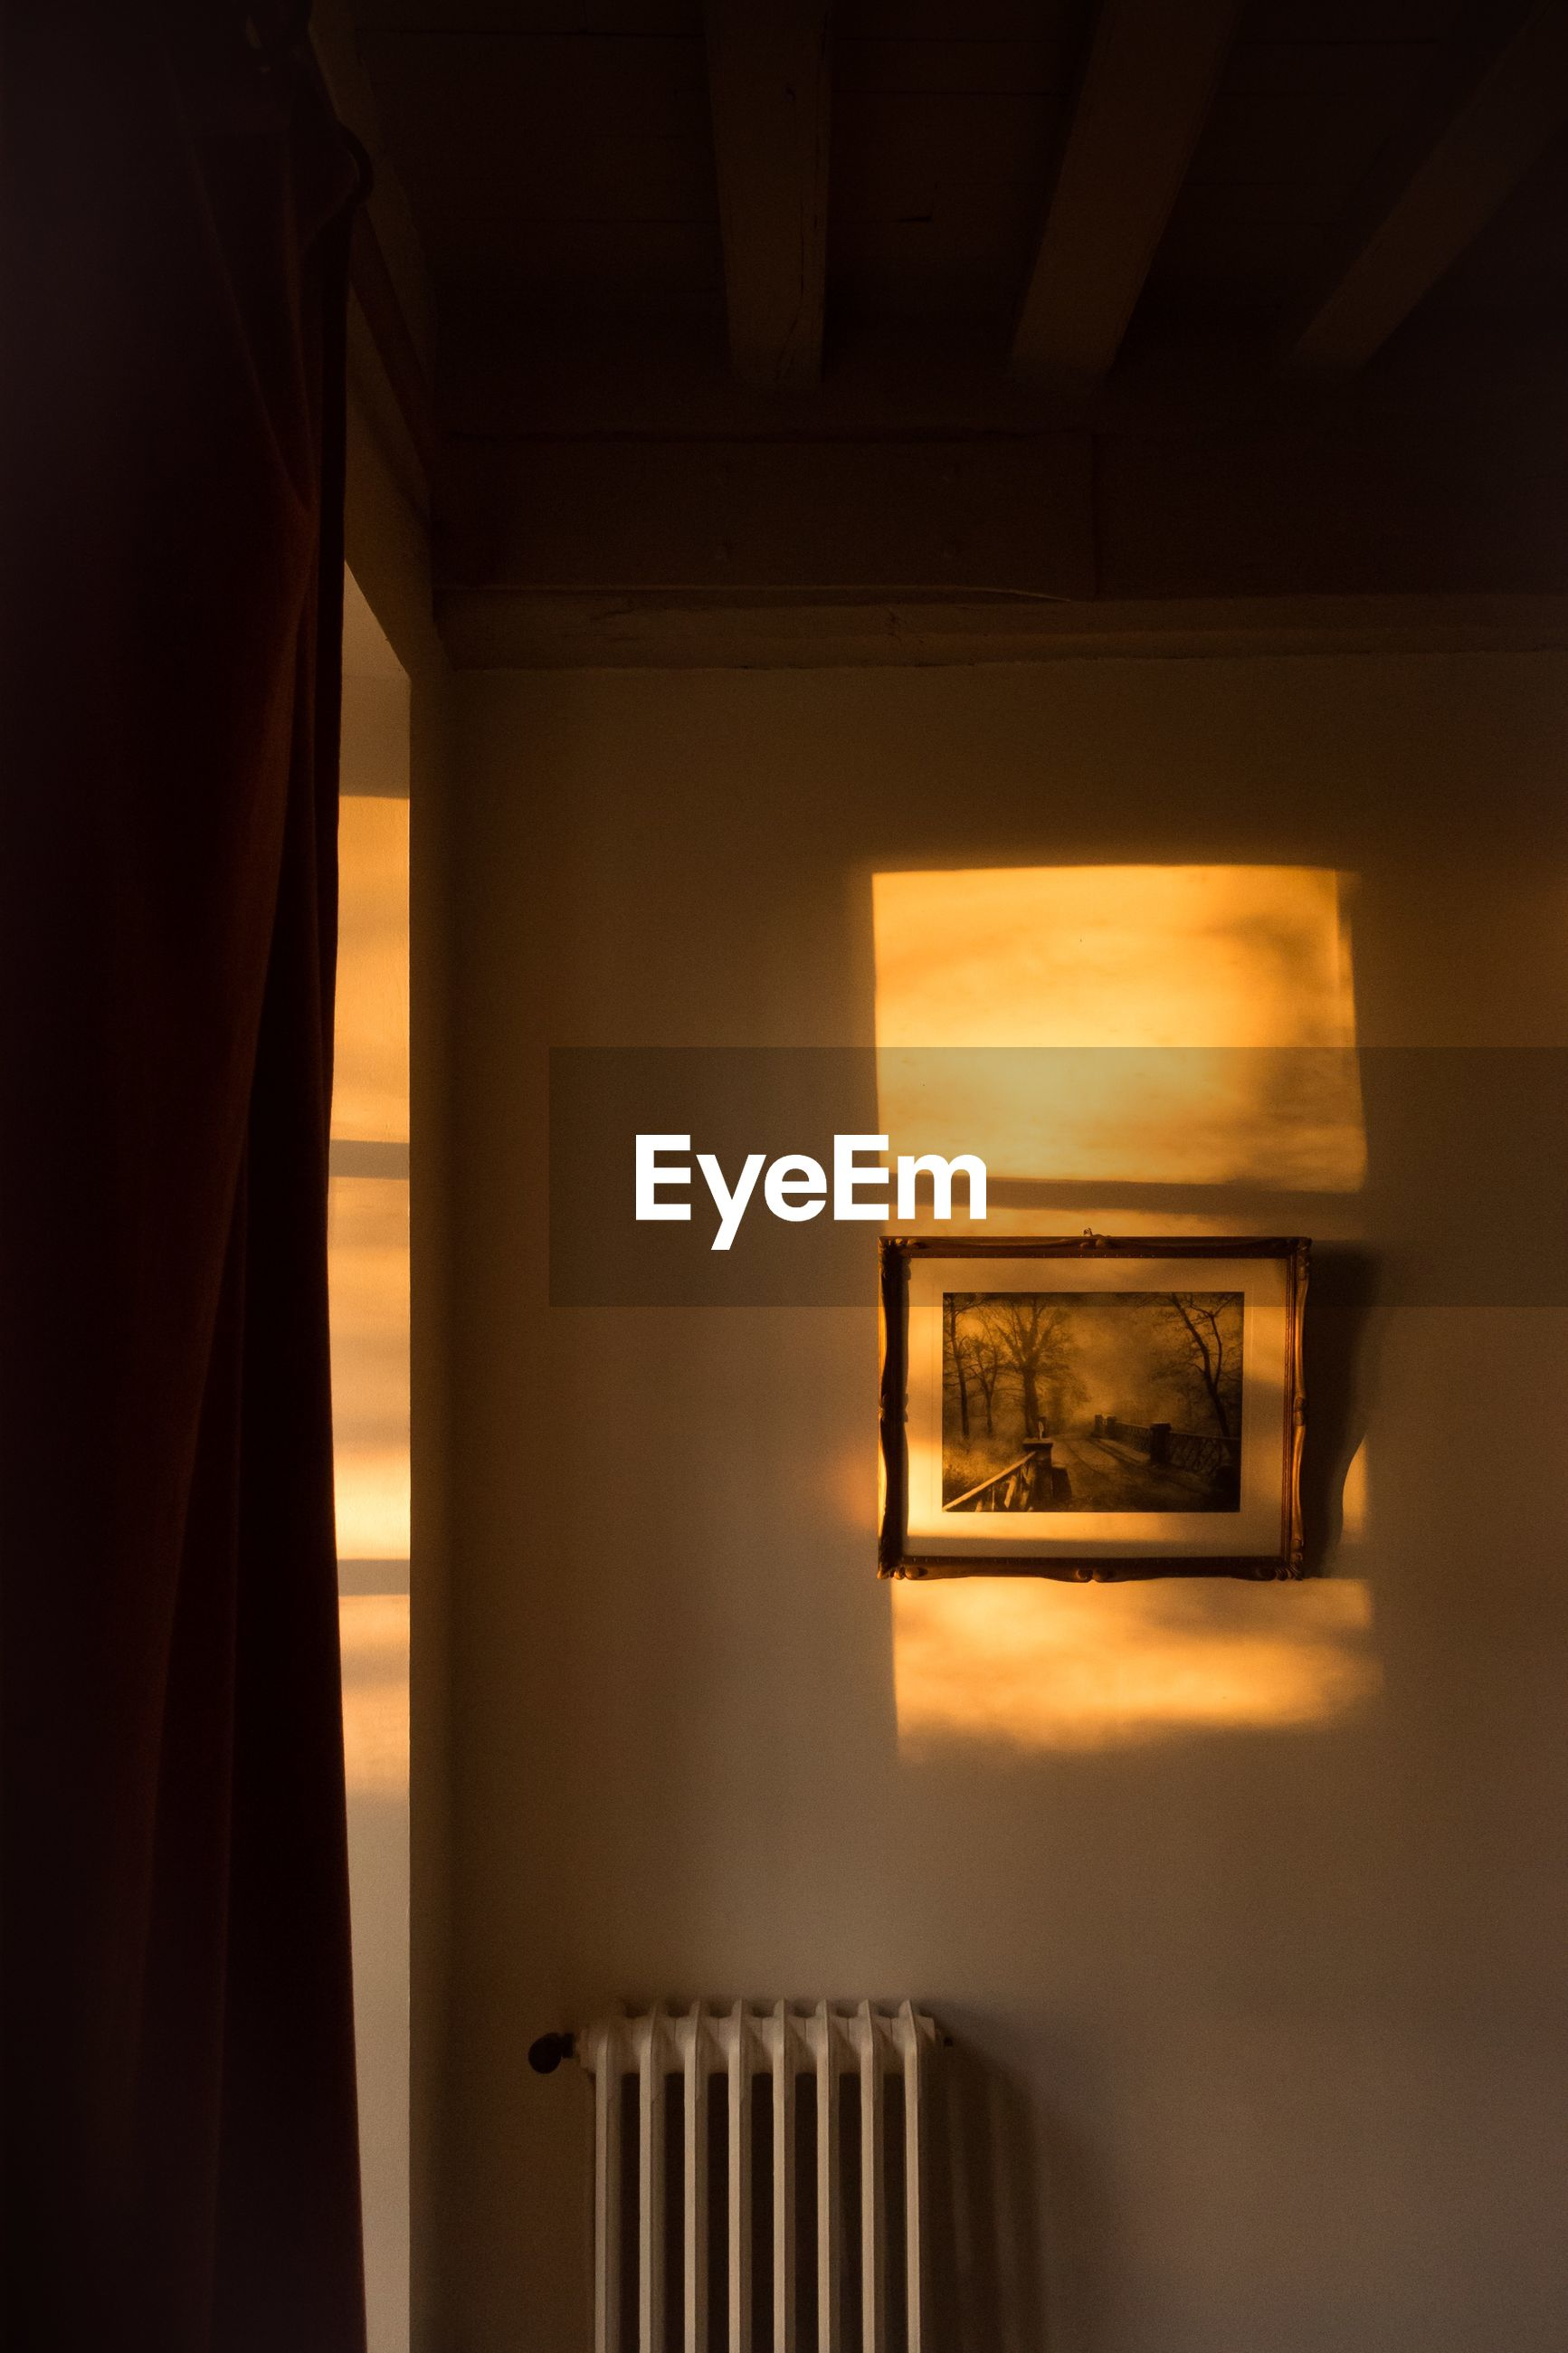 indoors, no people, architecture, illuminated, built structure, window, sunset, wall - building feature, low angle view, sunlight, nature, technology, lighting equipment, absence, wood - material, domestic room, close-up, orange color, ceiling